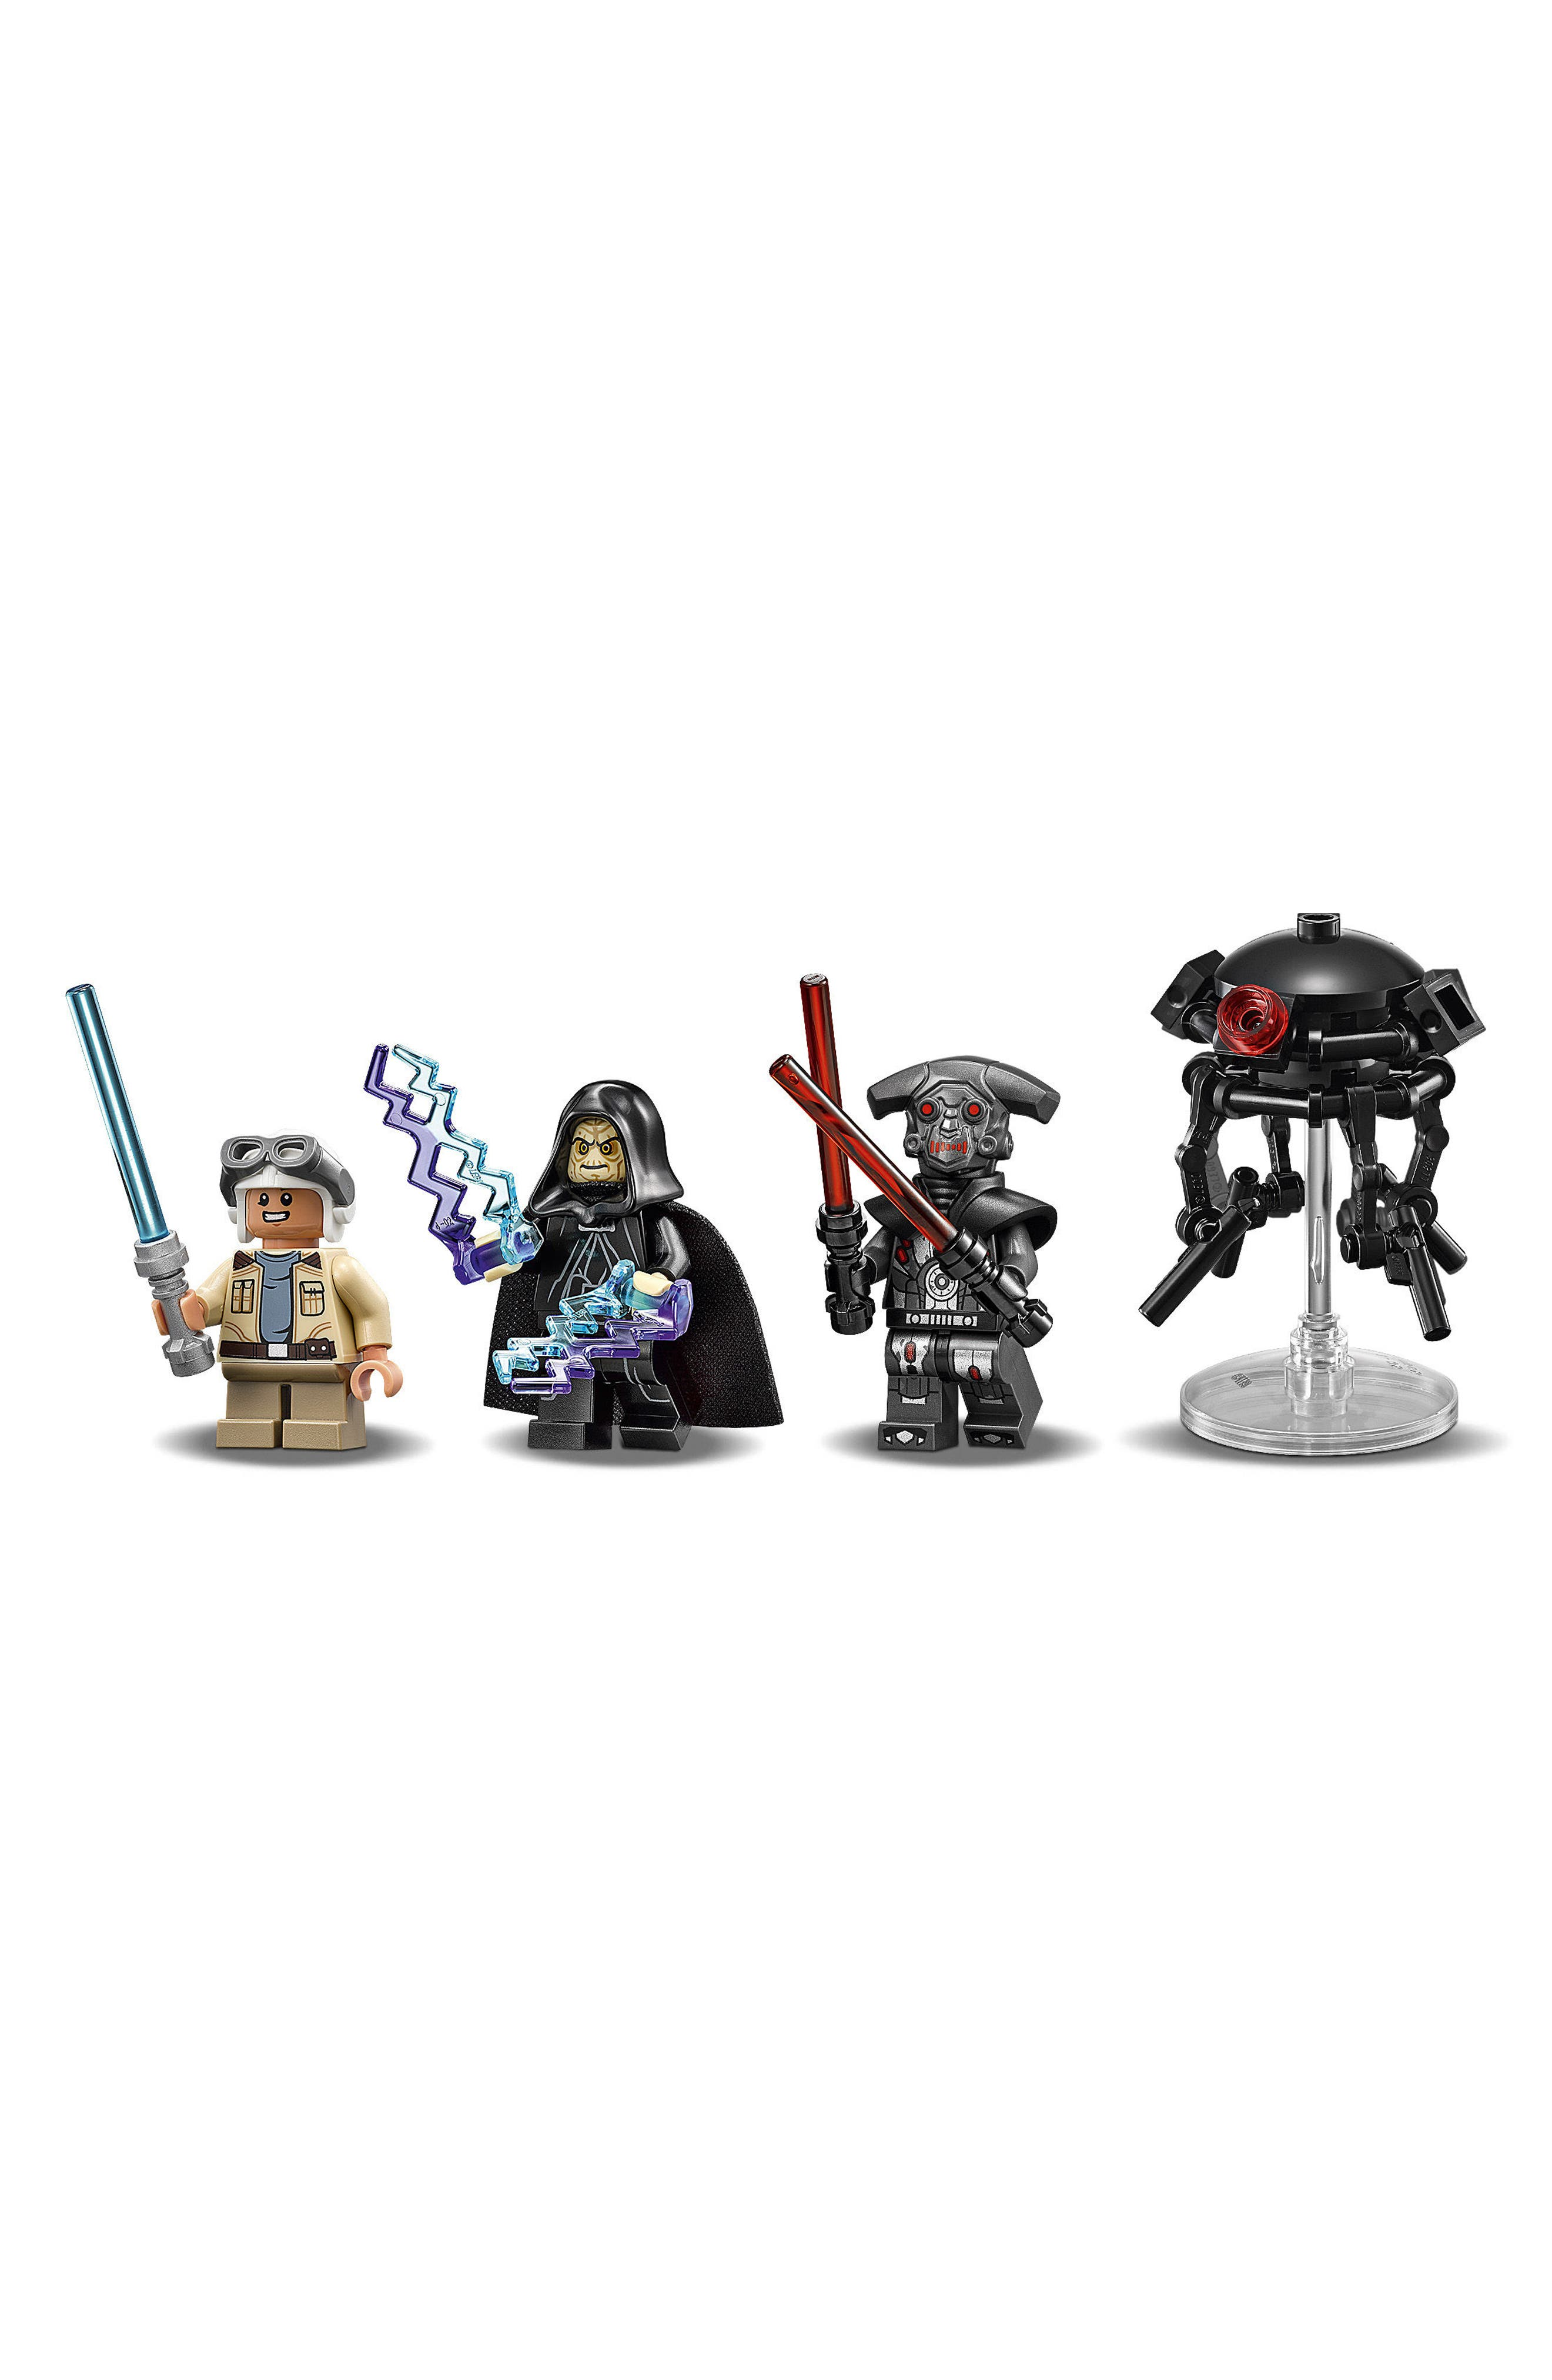 Star Wars<sup>™</sup>: The Freemaker Adventures Tracker I Play Set - 75185,                             Alternate thumbnail 6, color,                             001